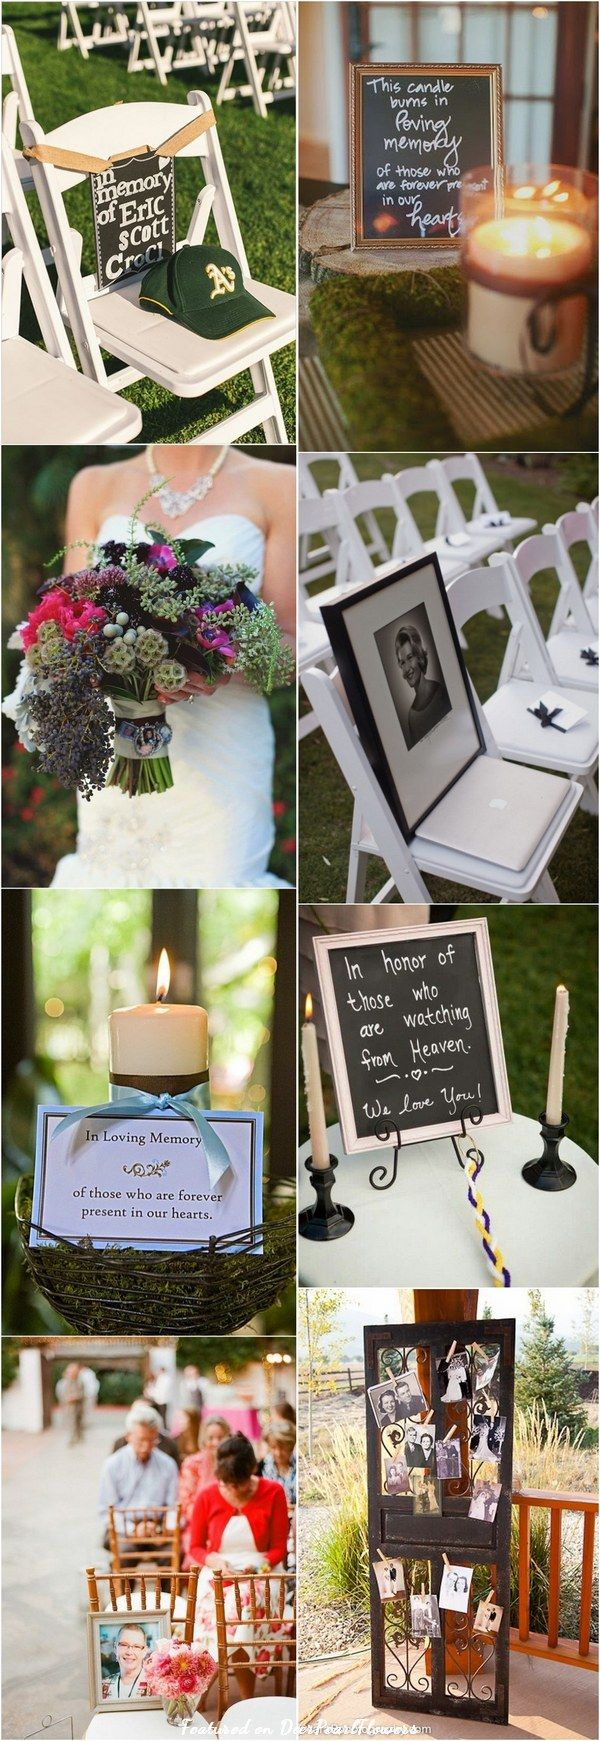 20 Unique Ways to Honor Deceased Loved Ones at Your Wedding / http://www.deerpearlflowers.com/ways-to-honor-deceased-loved-ones-at-your-wedding/